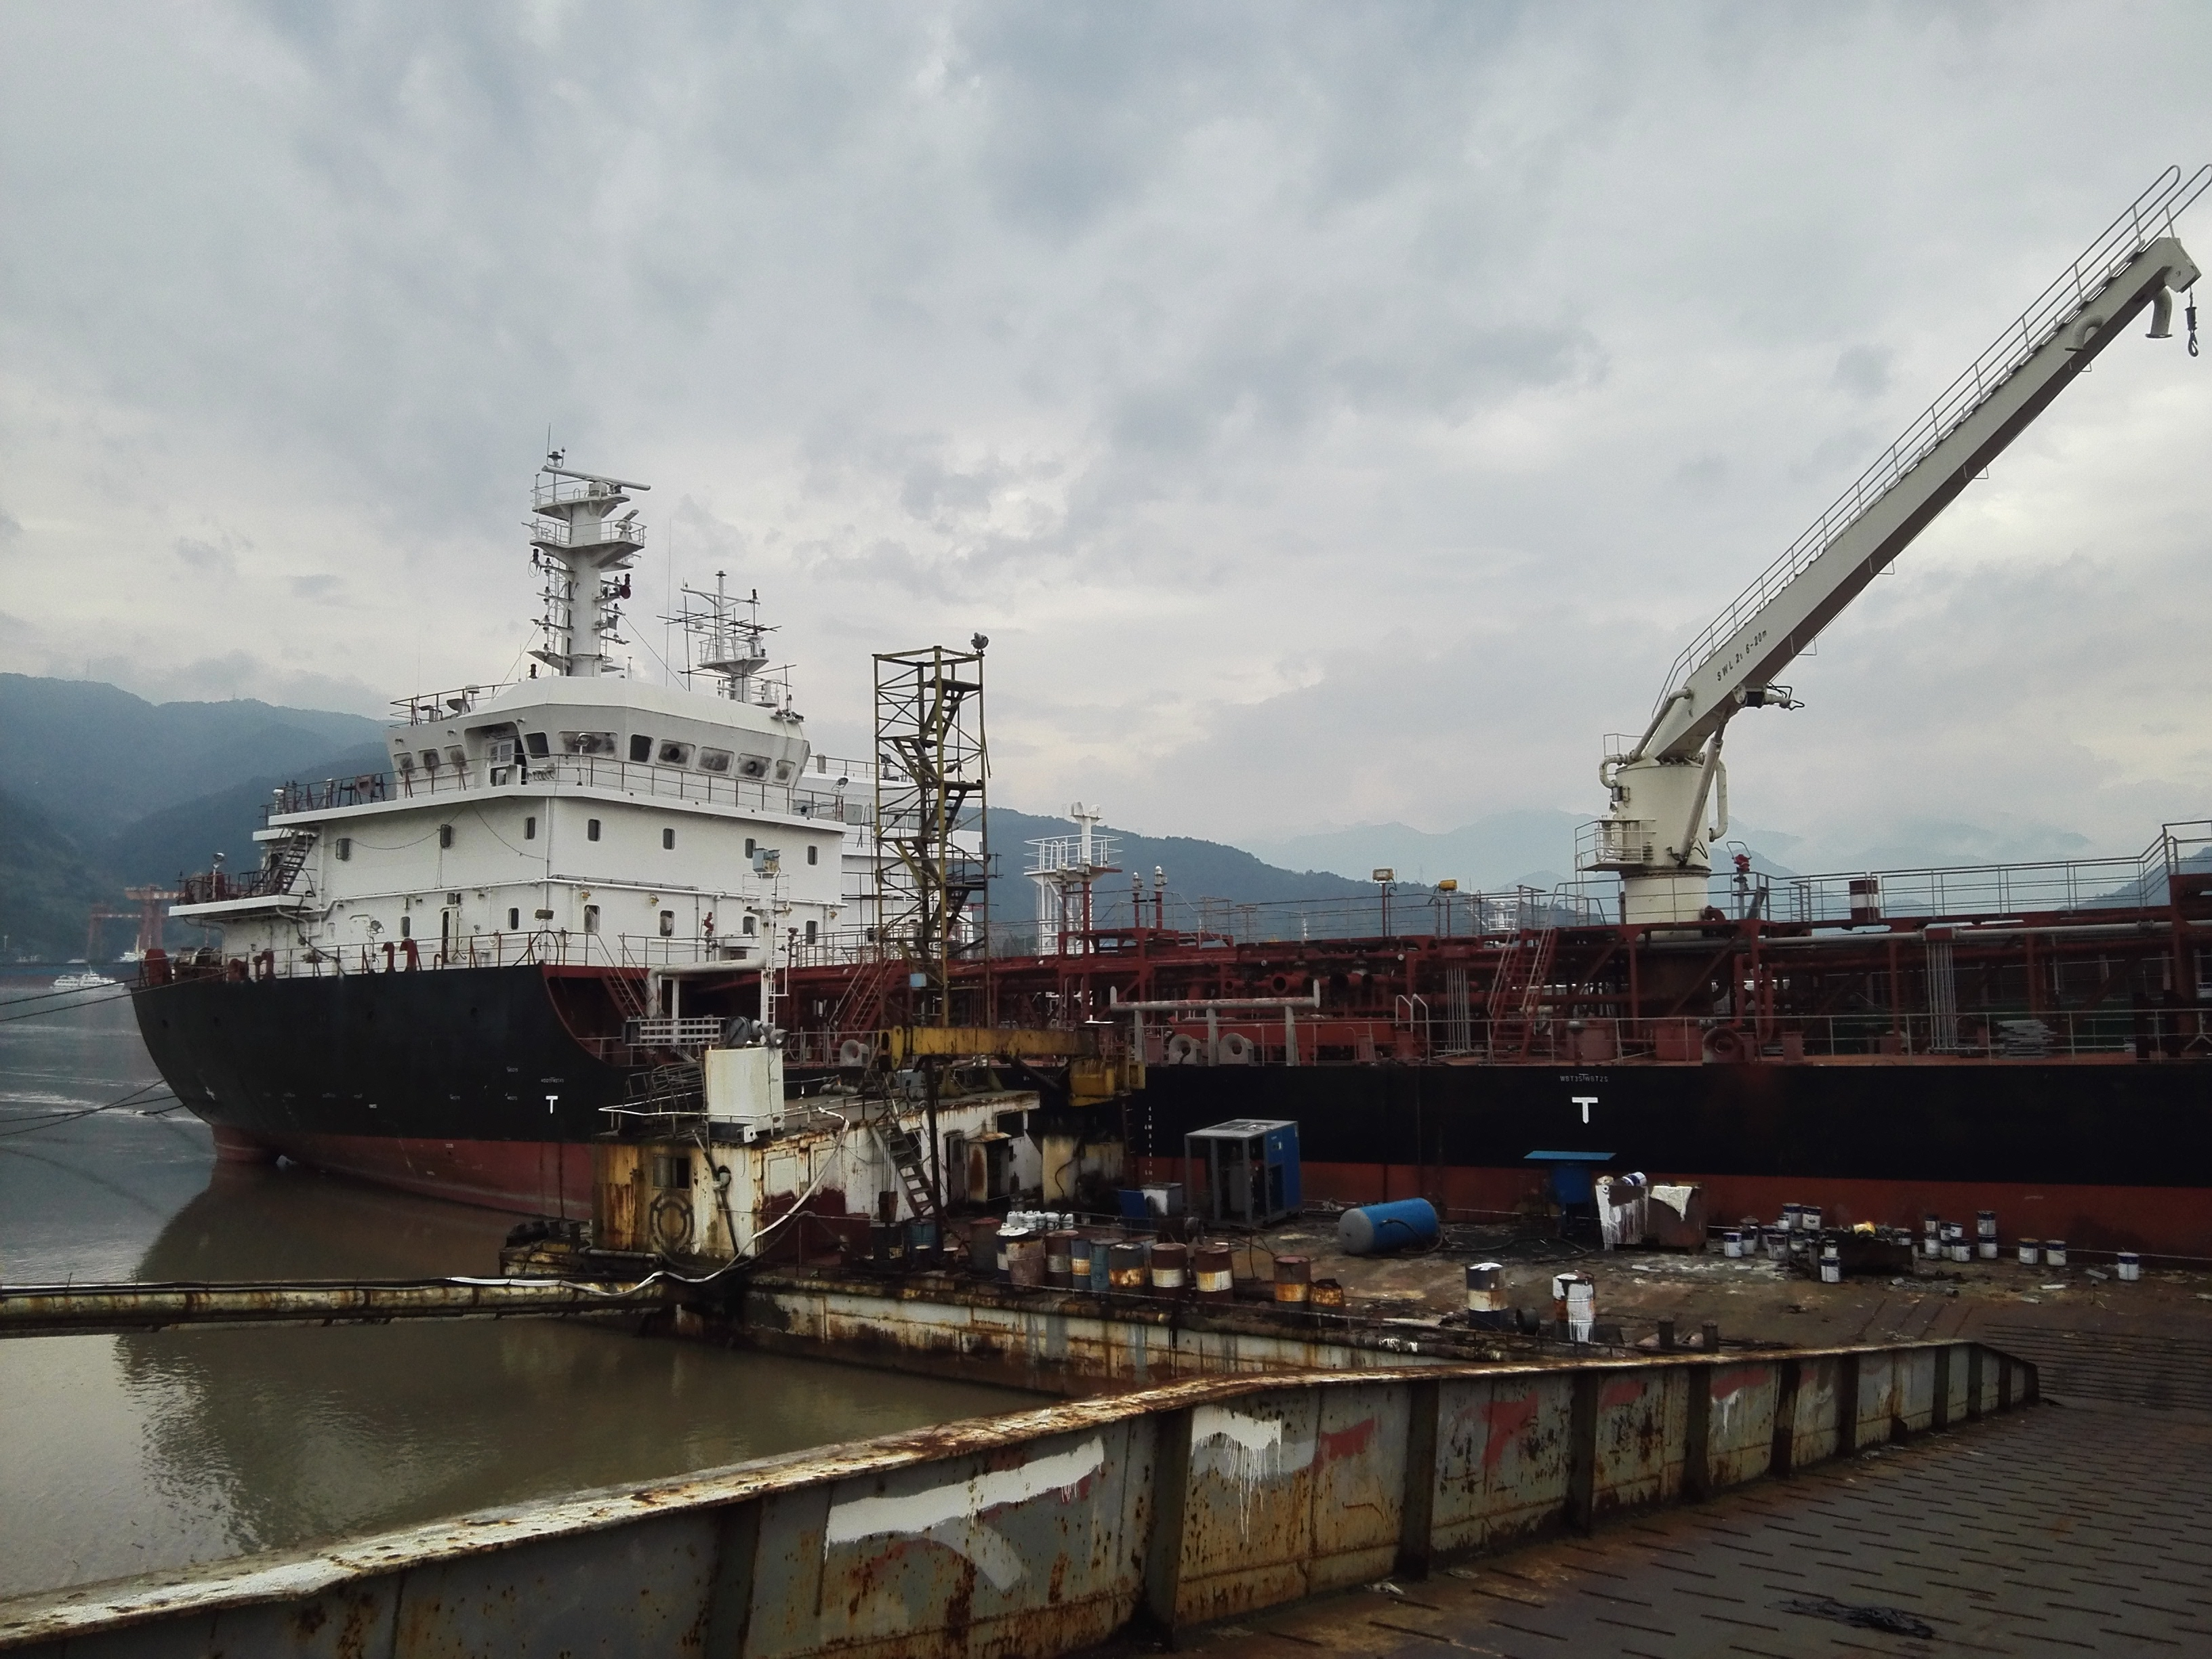 3500dwt bunker tanker for resale.